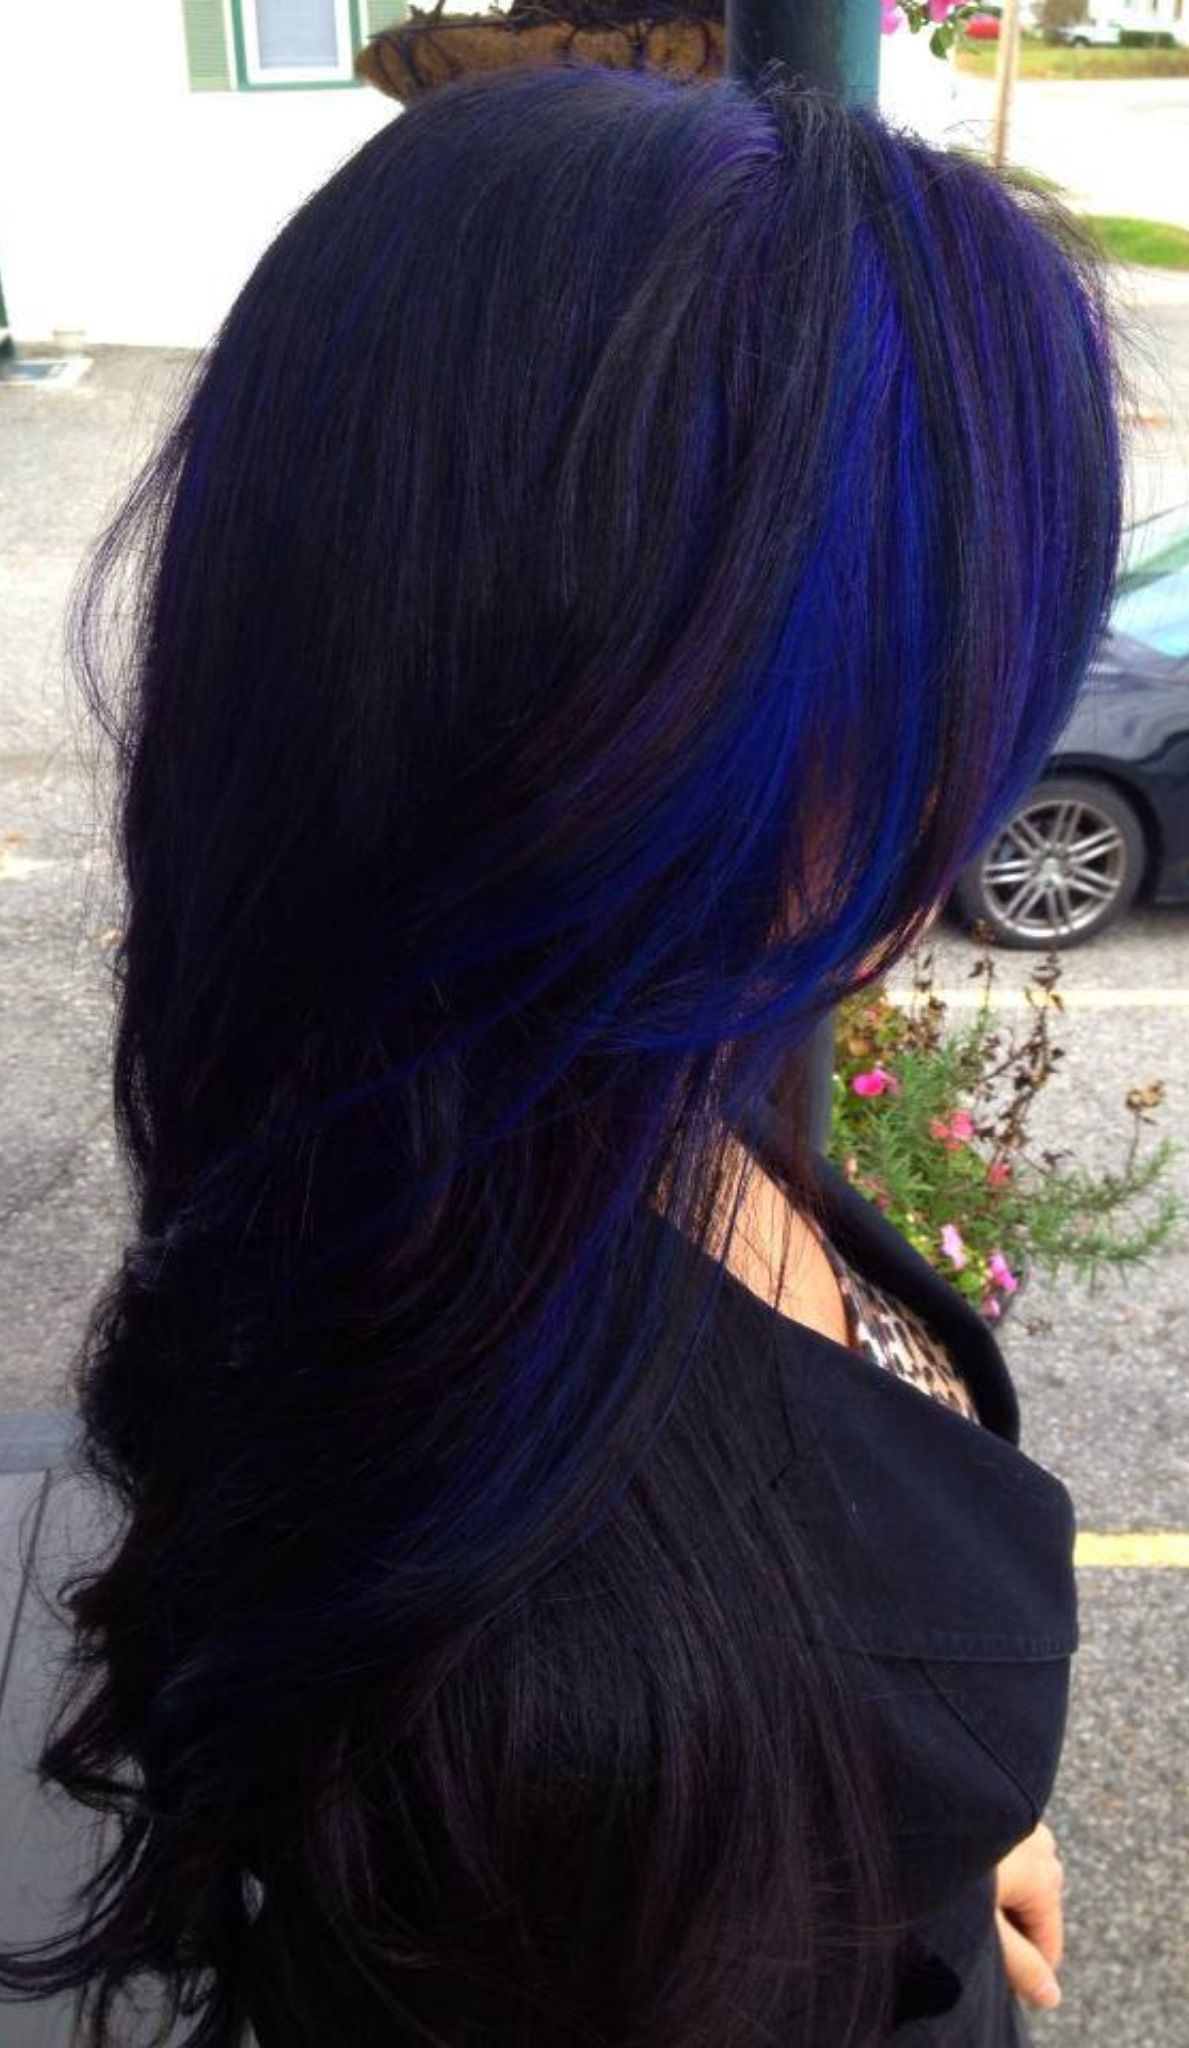 Hair by Megan at Voila blue and purple streak with black base